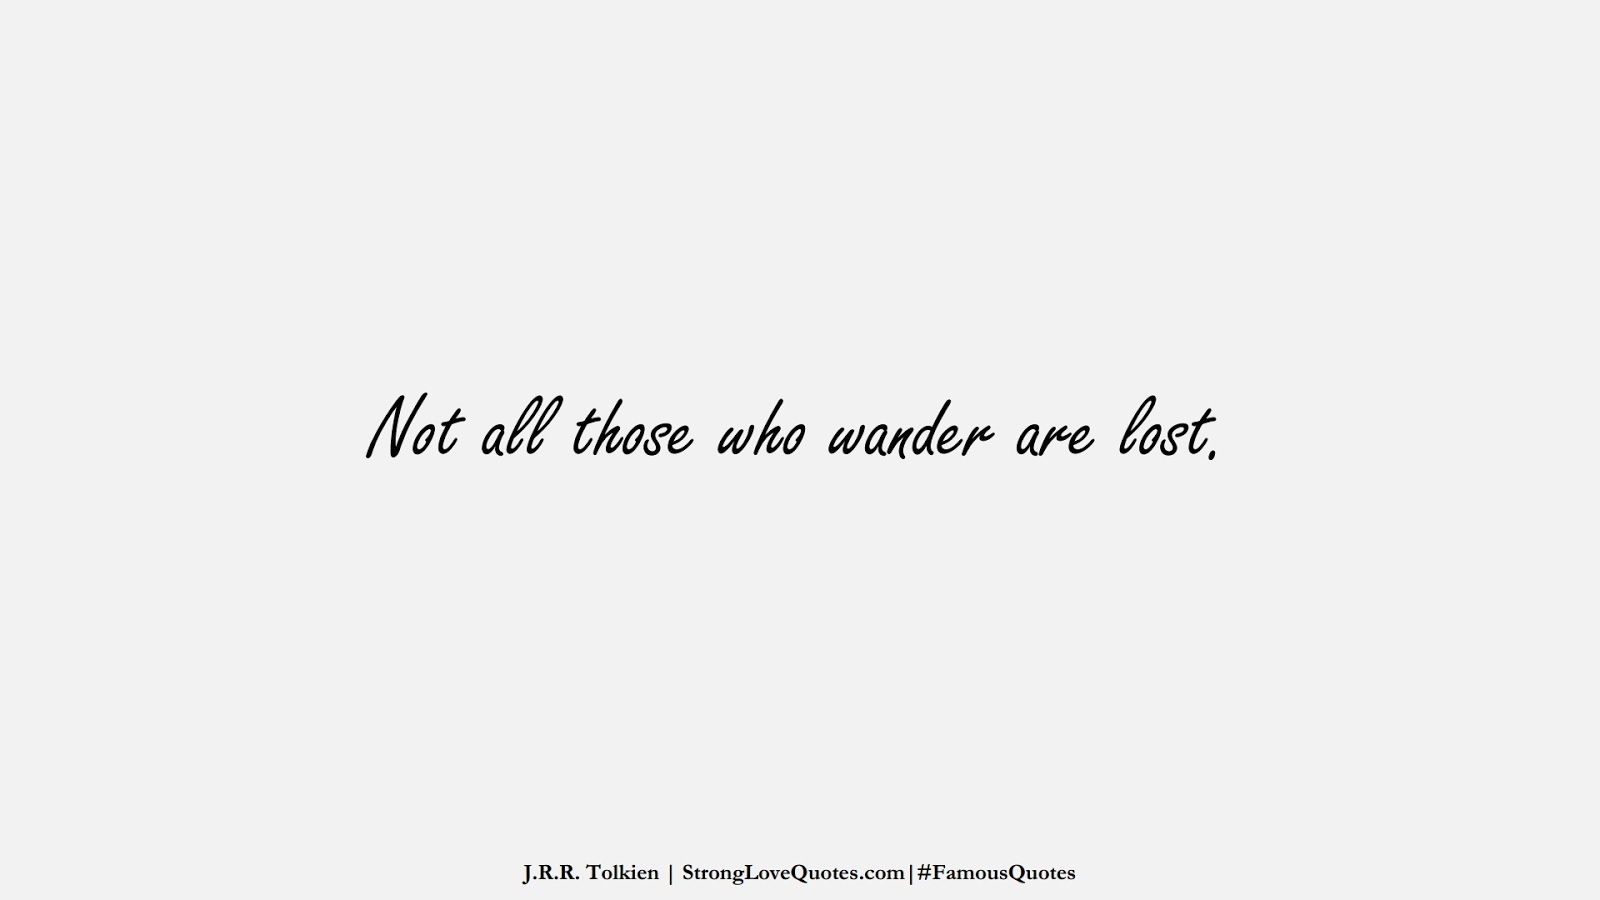 Not all those who wander are lost. (J.R.R. Tolkien);  #FamousQuotes